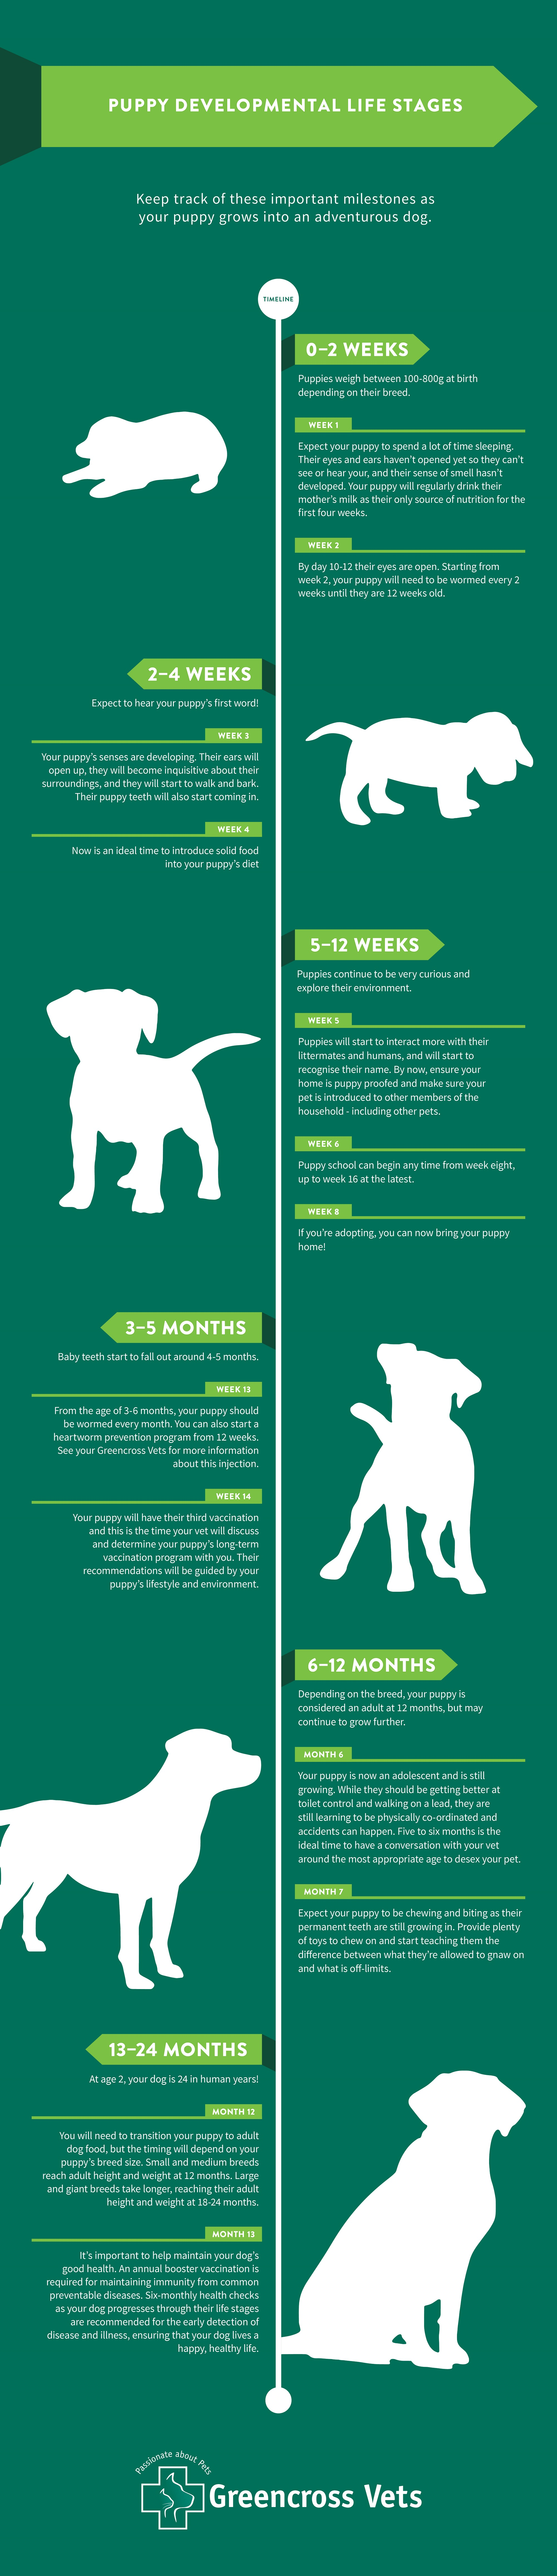 Puppy Development Stages infographic